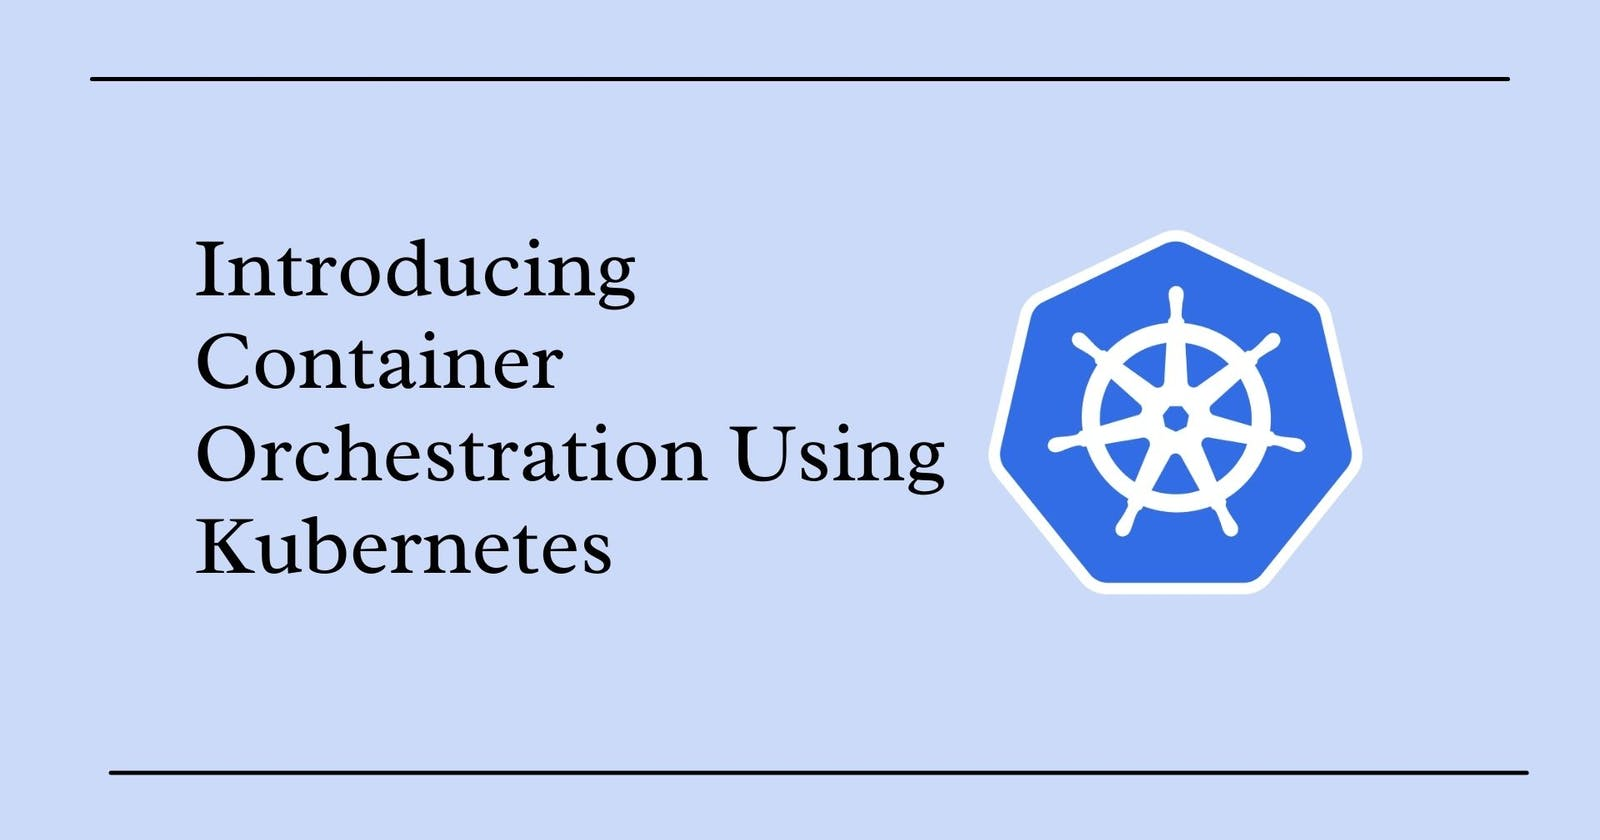 Introducing Container Orchestration Using Kubernetes